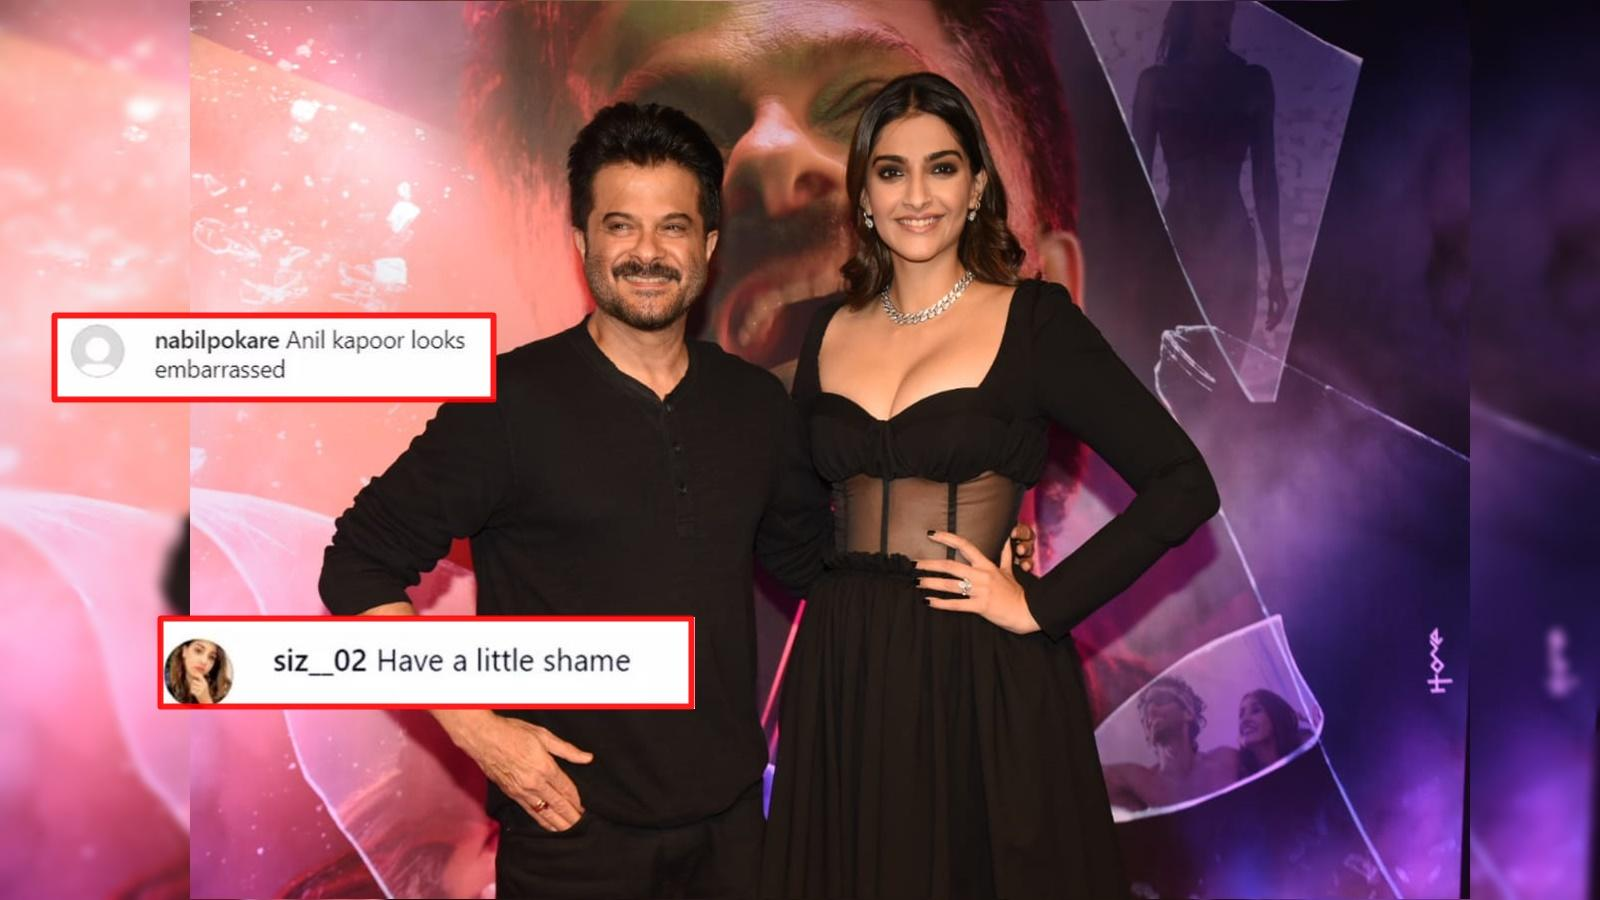 Sonam Kapoor Stirs Online Debate With Her Malang Premier Outfit Anil Kapoor S Old Tweet On Daughter Serves As Epic Reply To Trolls Hindi Movie News Bollywood Times Of India